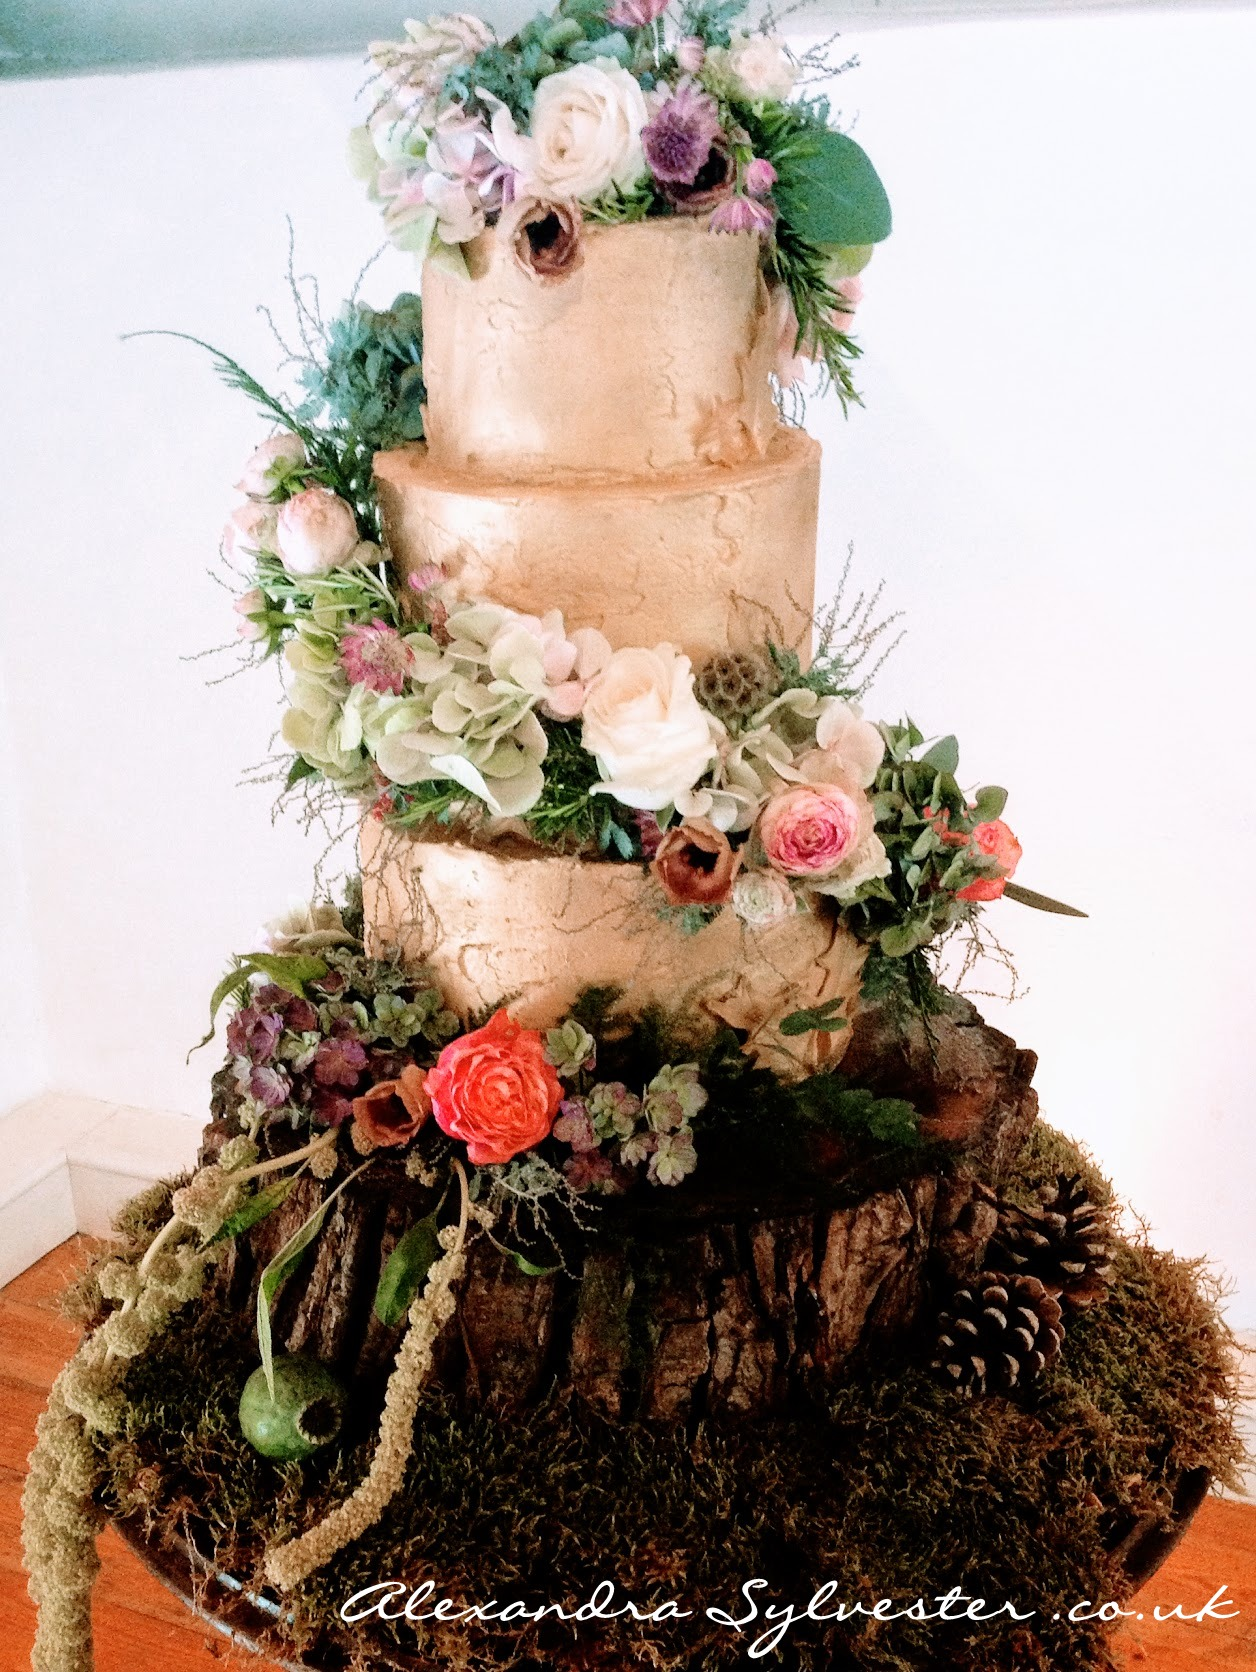 Midsummer night's dream cake flowers